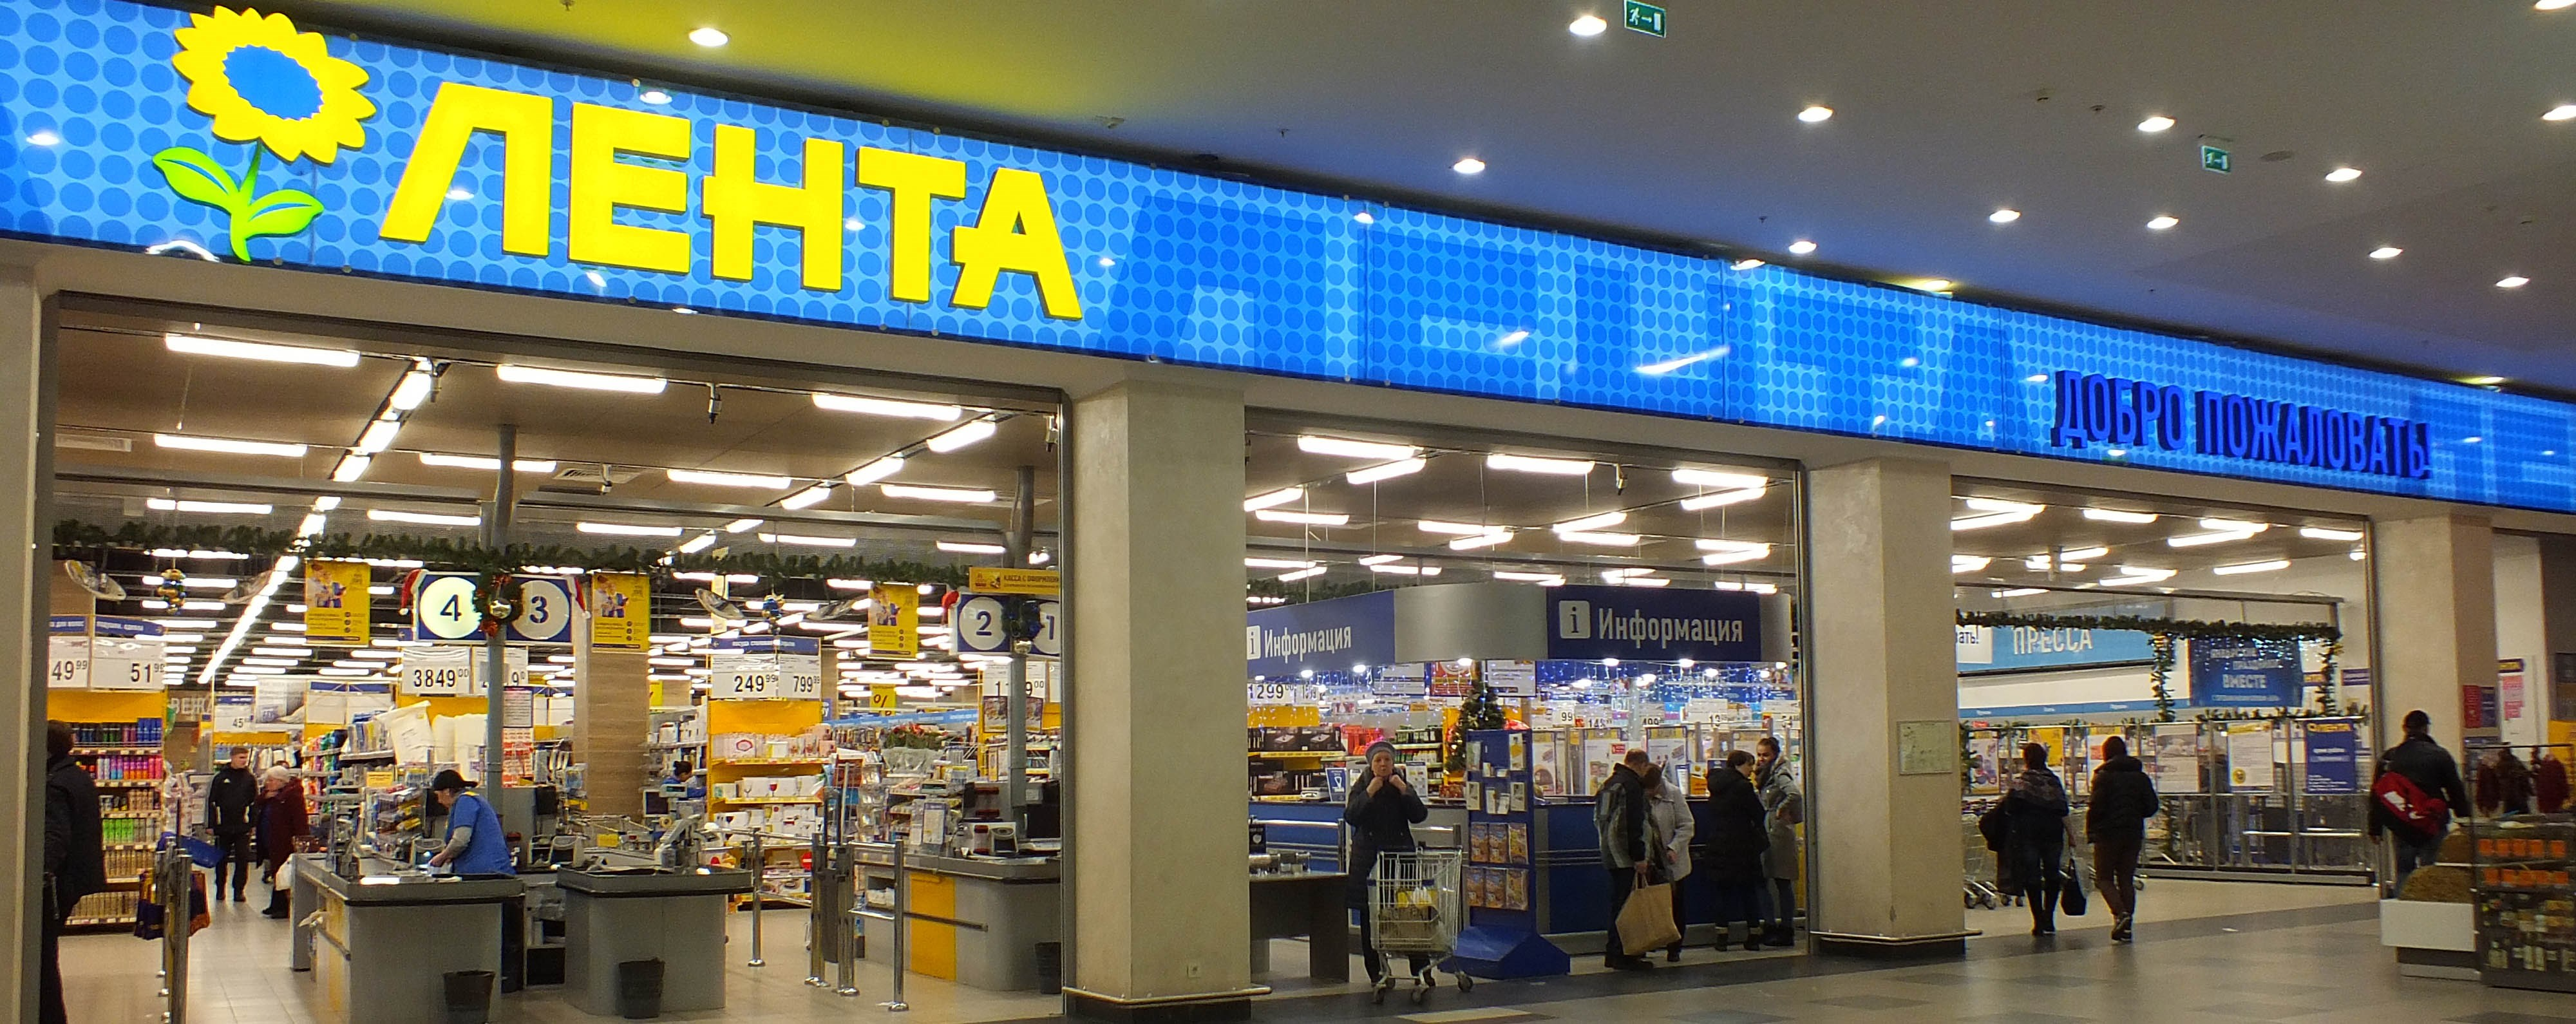 Lenta-store in Moscow. Photo: Wikimedia Commons